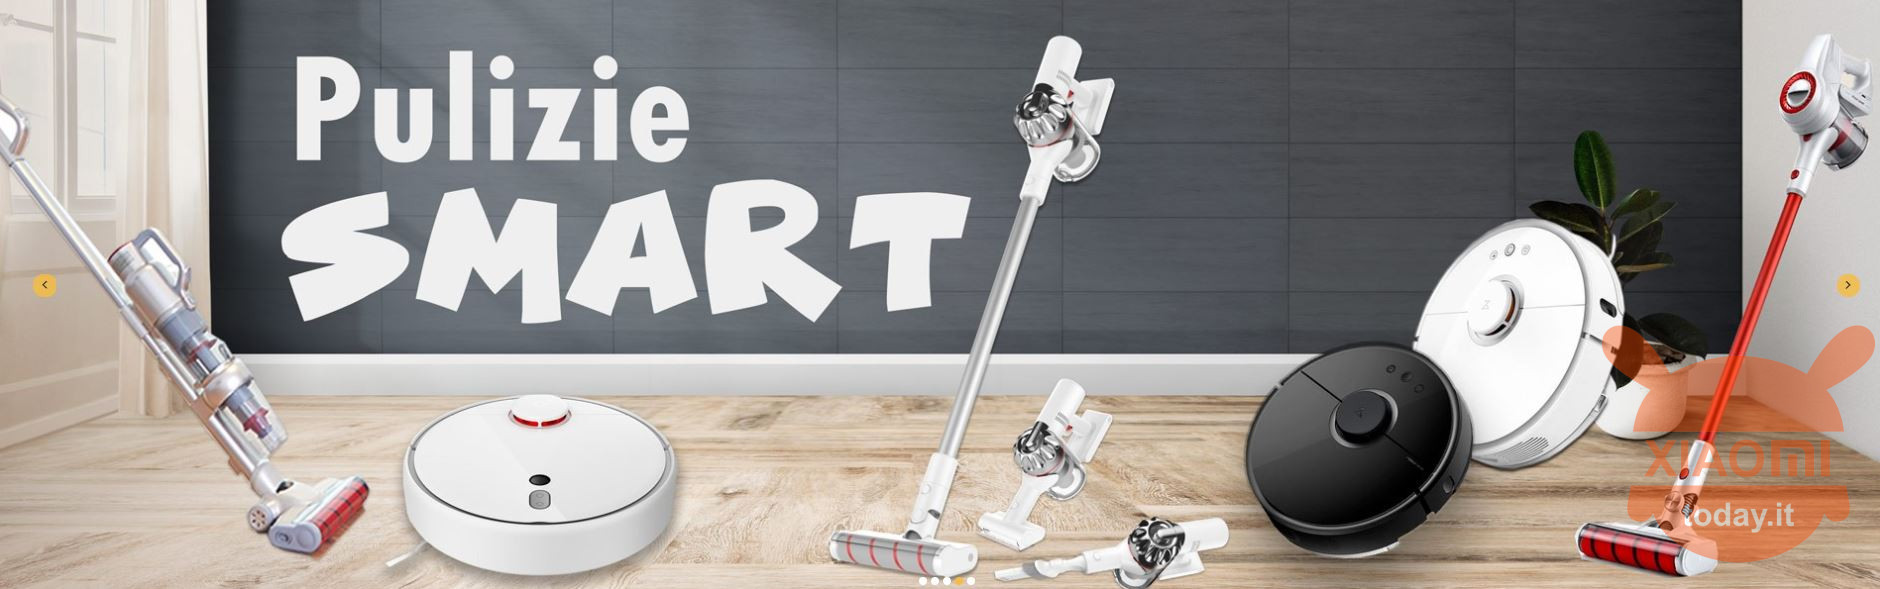 smart cleaning geekmall